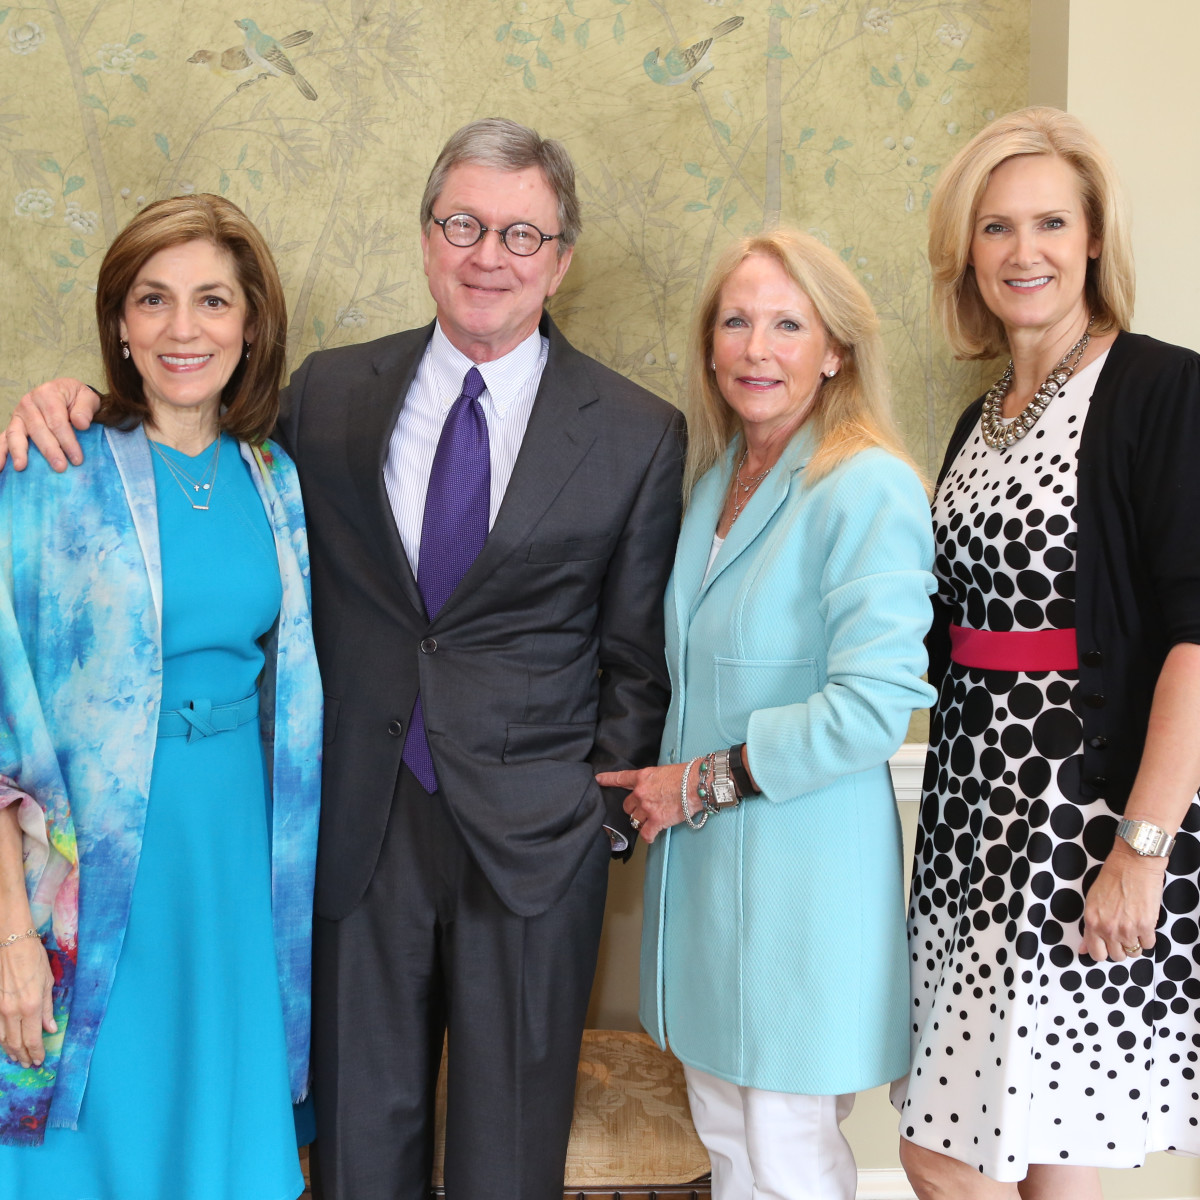 Partners Luncheon 4/16, Maria Pappas, Phil Ferguson, Kathy O'Neil and Kate Lucrezi.